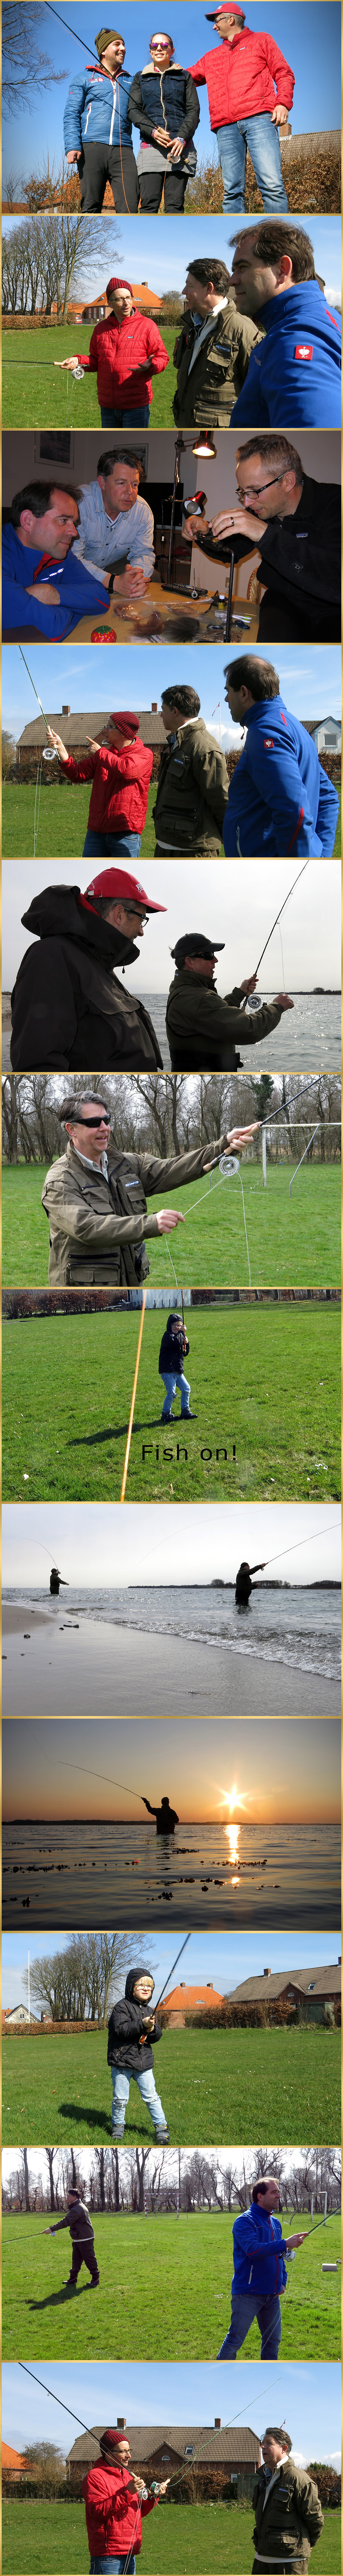 fly casting tuition